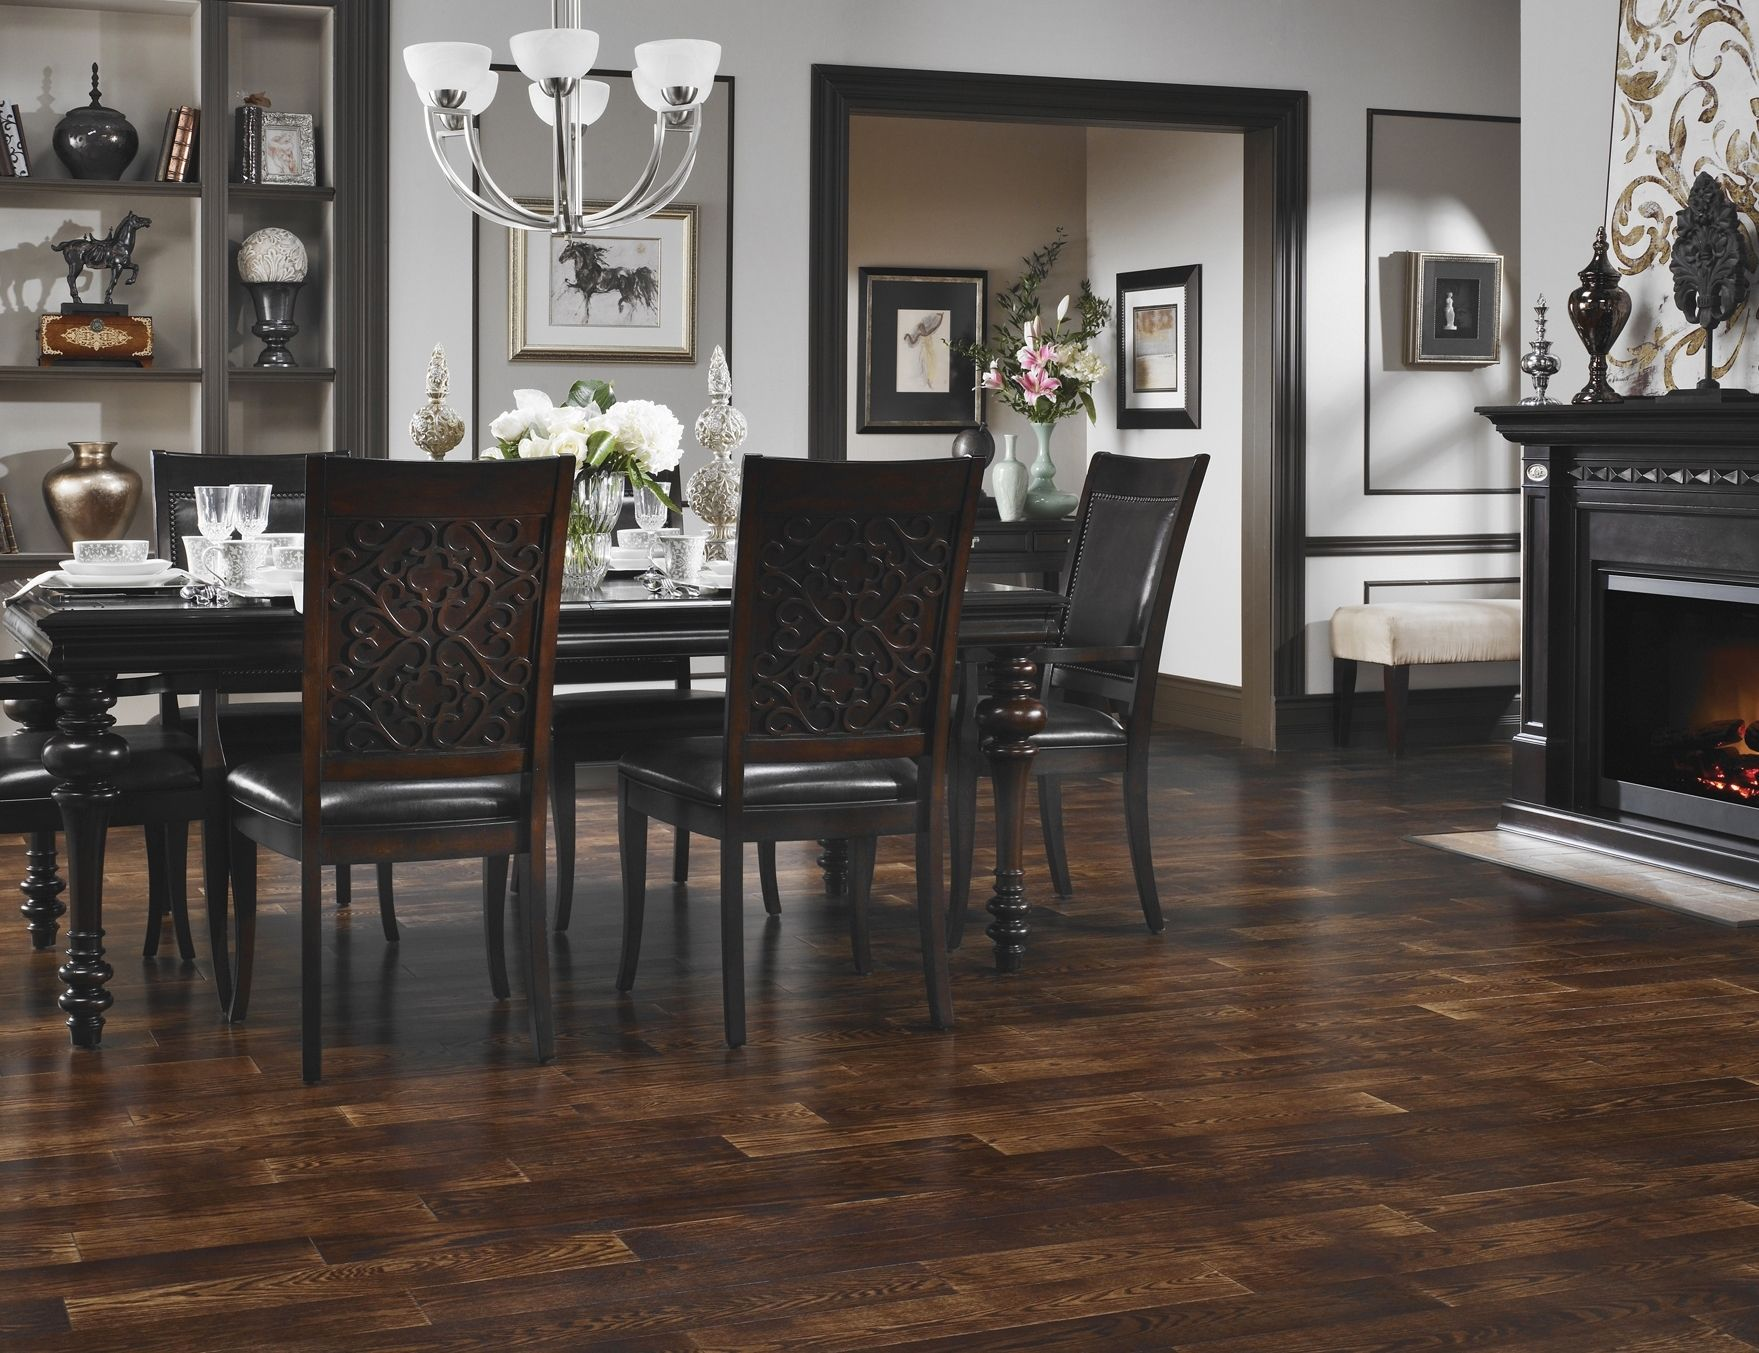 Marvelous Modern Large Dining Room Decors With Black Fabric Sofa And Dark Wooden Floor Inside Hardwood Design Ideas For Inspiration